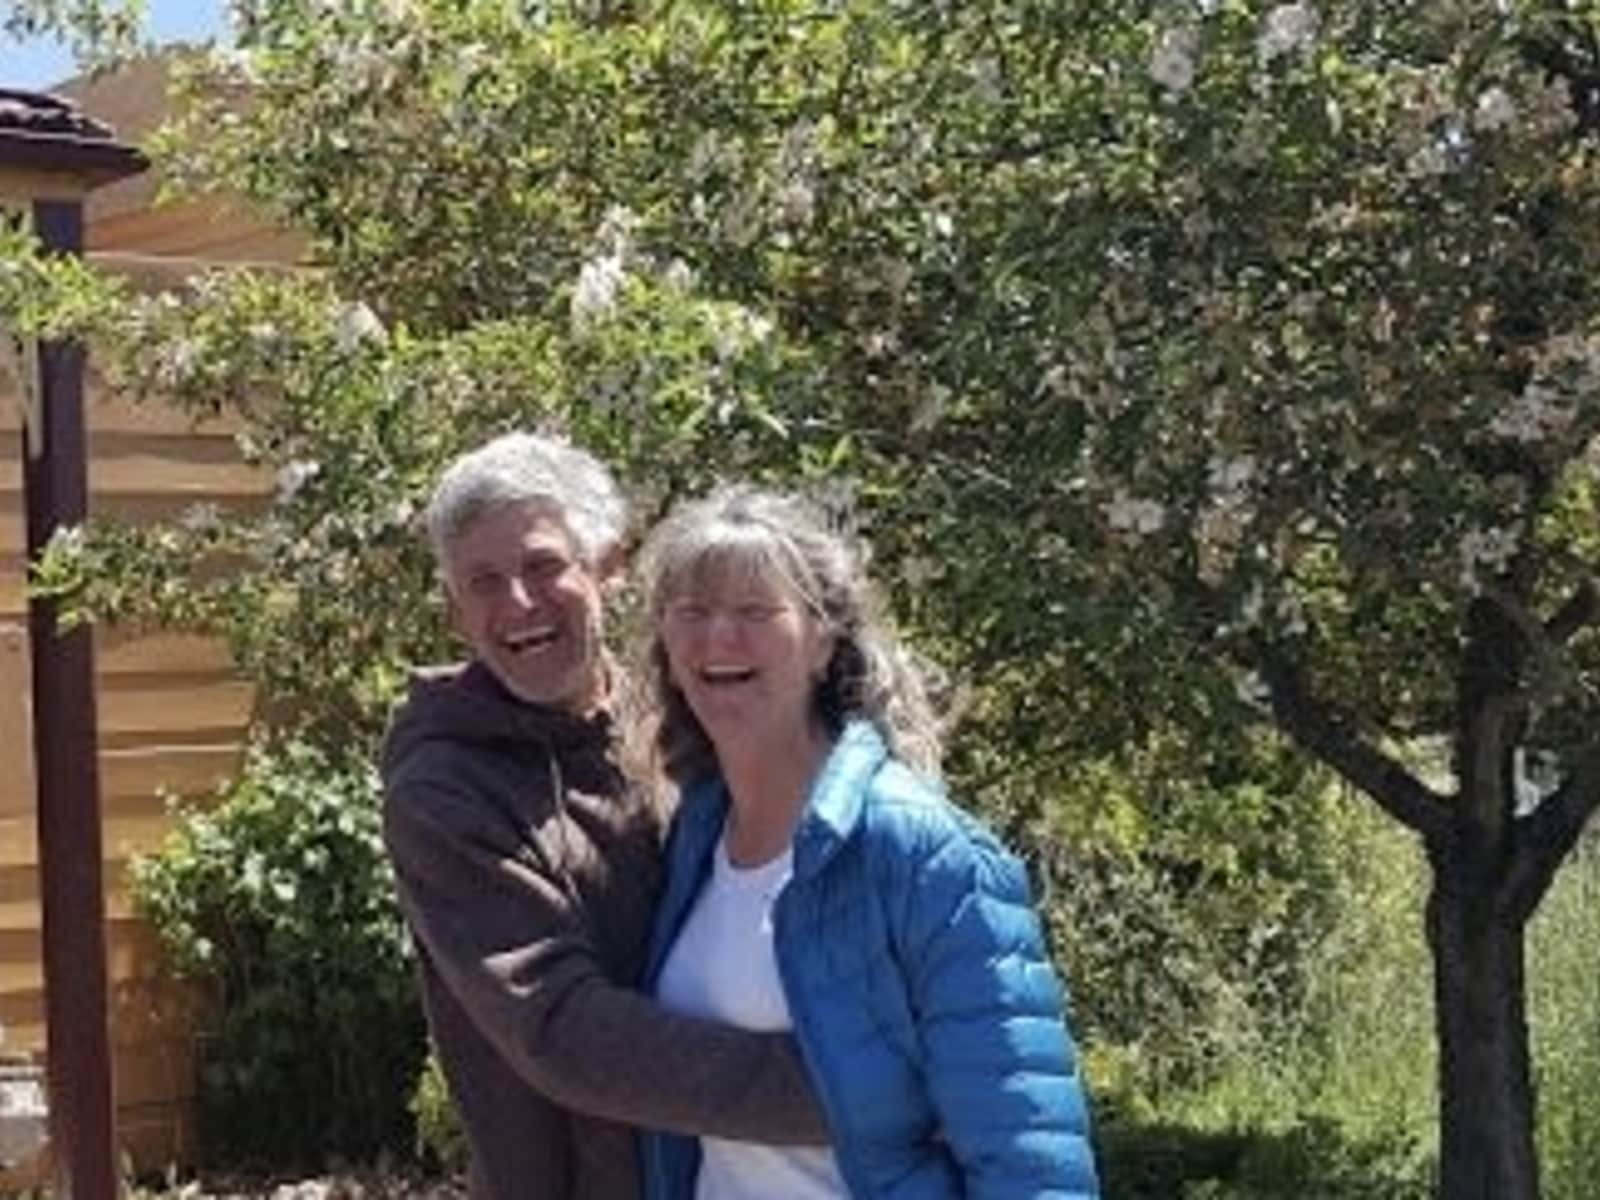 Sue & Ron from Orange, New South Wales, Australia